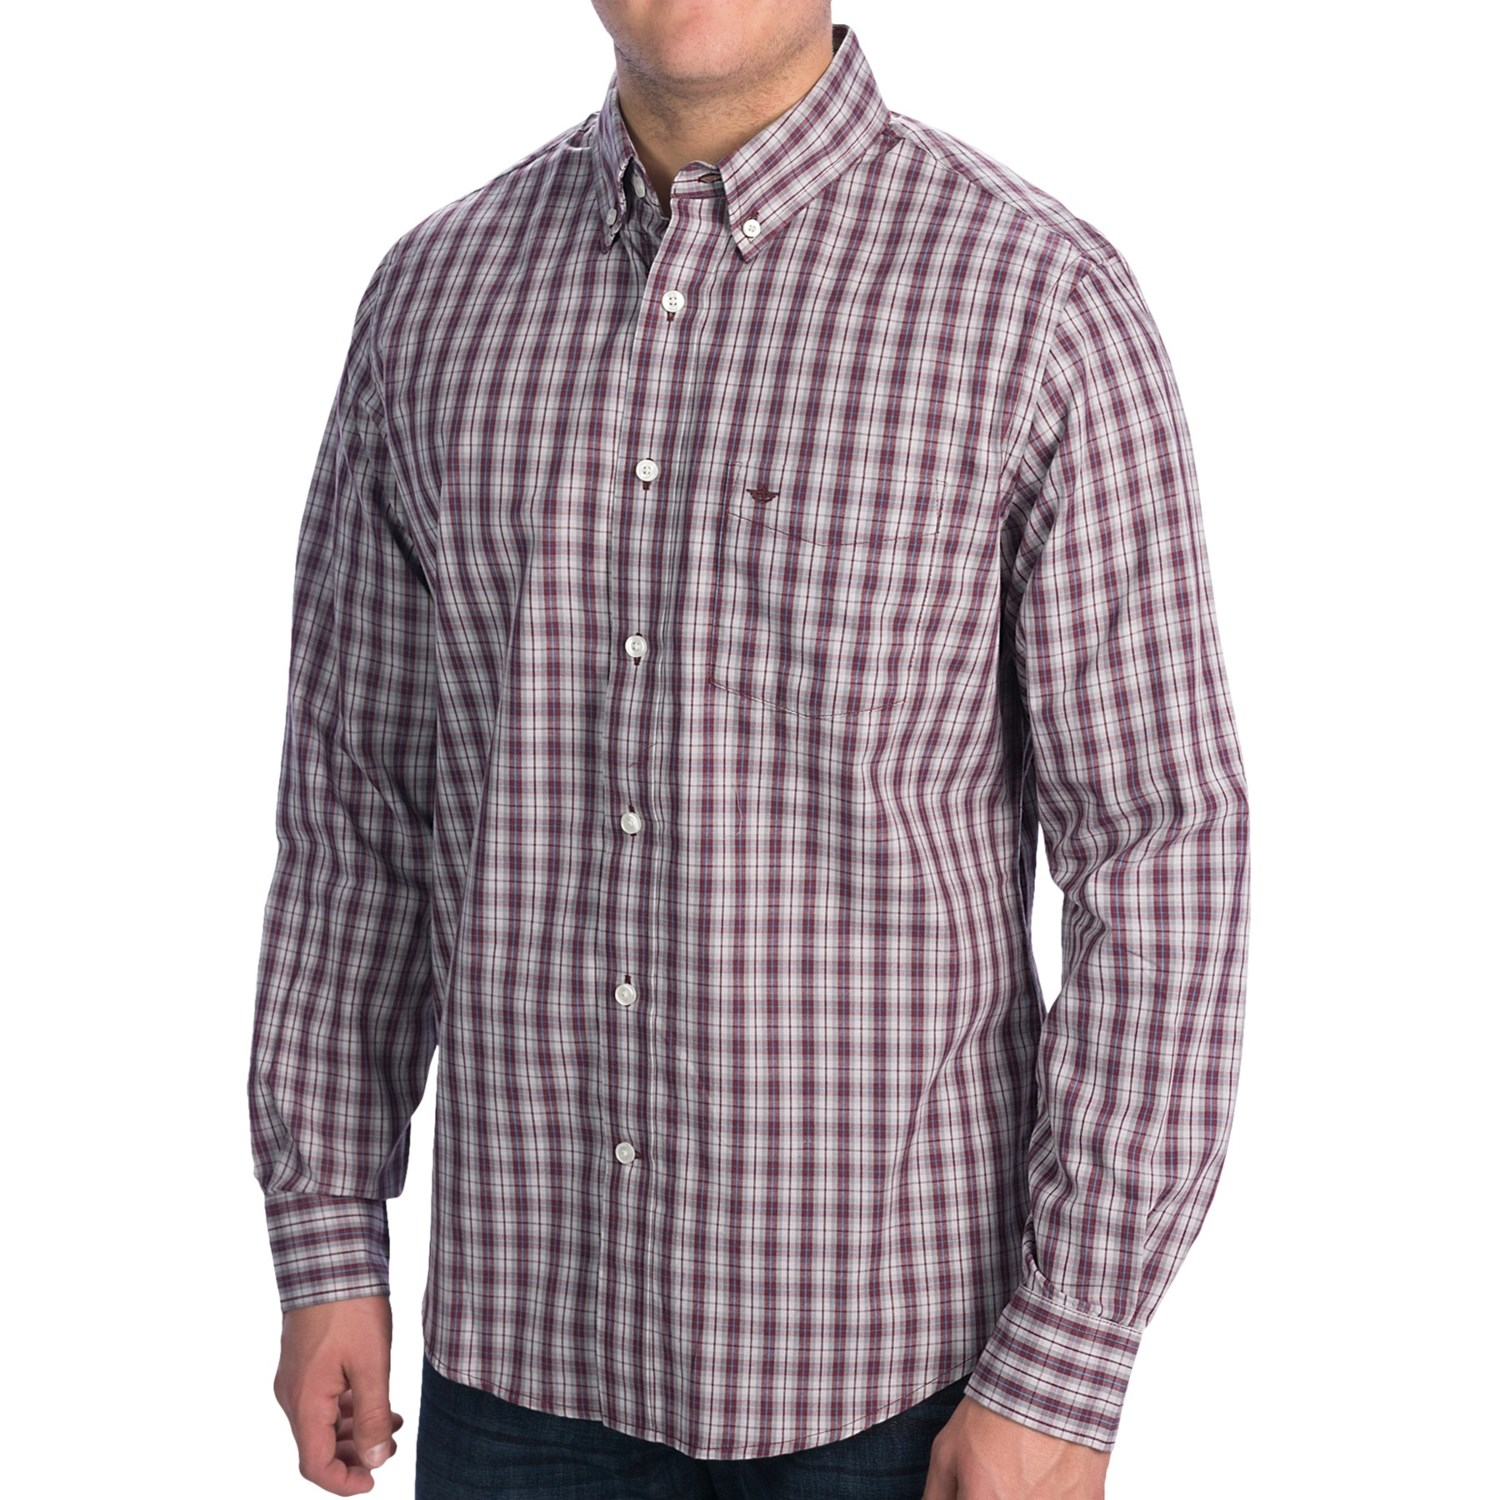 Dockers no wrinkle plaid shirt long sleeve for men for Dockers wrinkle free shirts